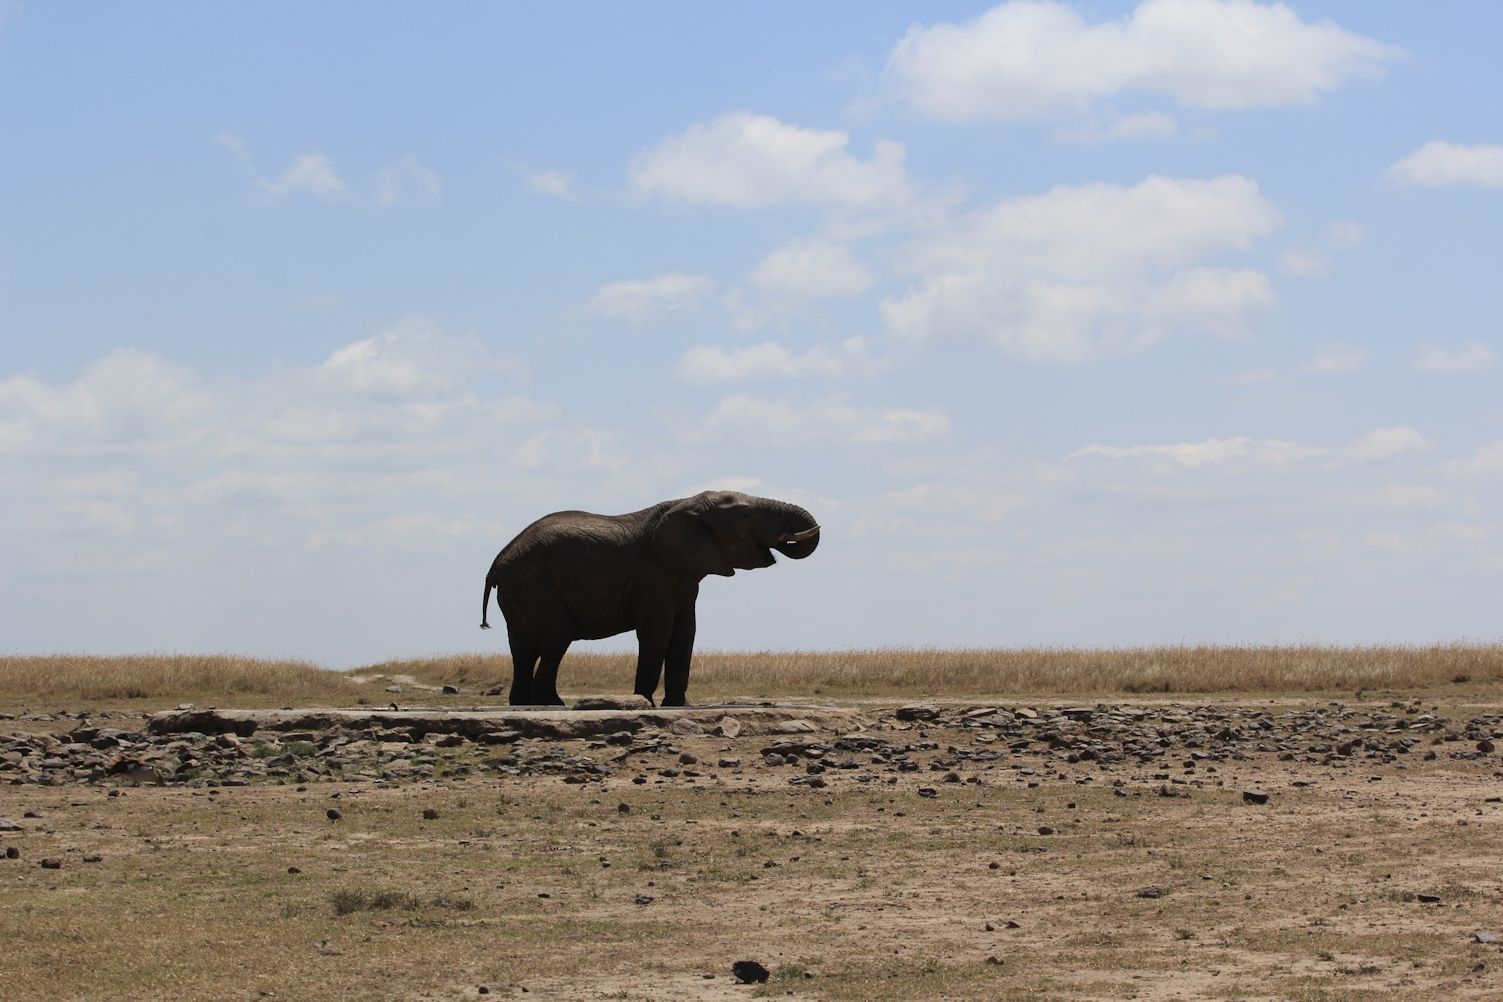 A lonely elephant.